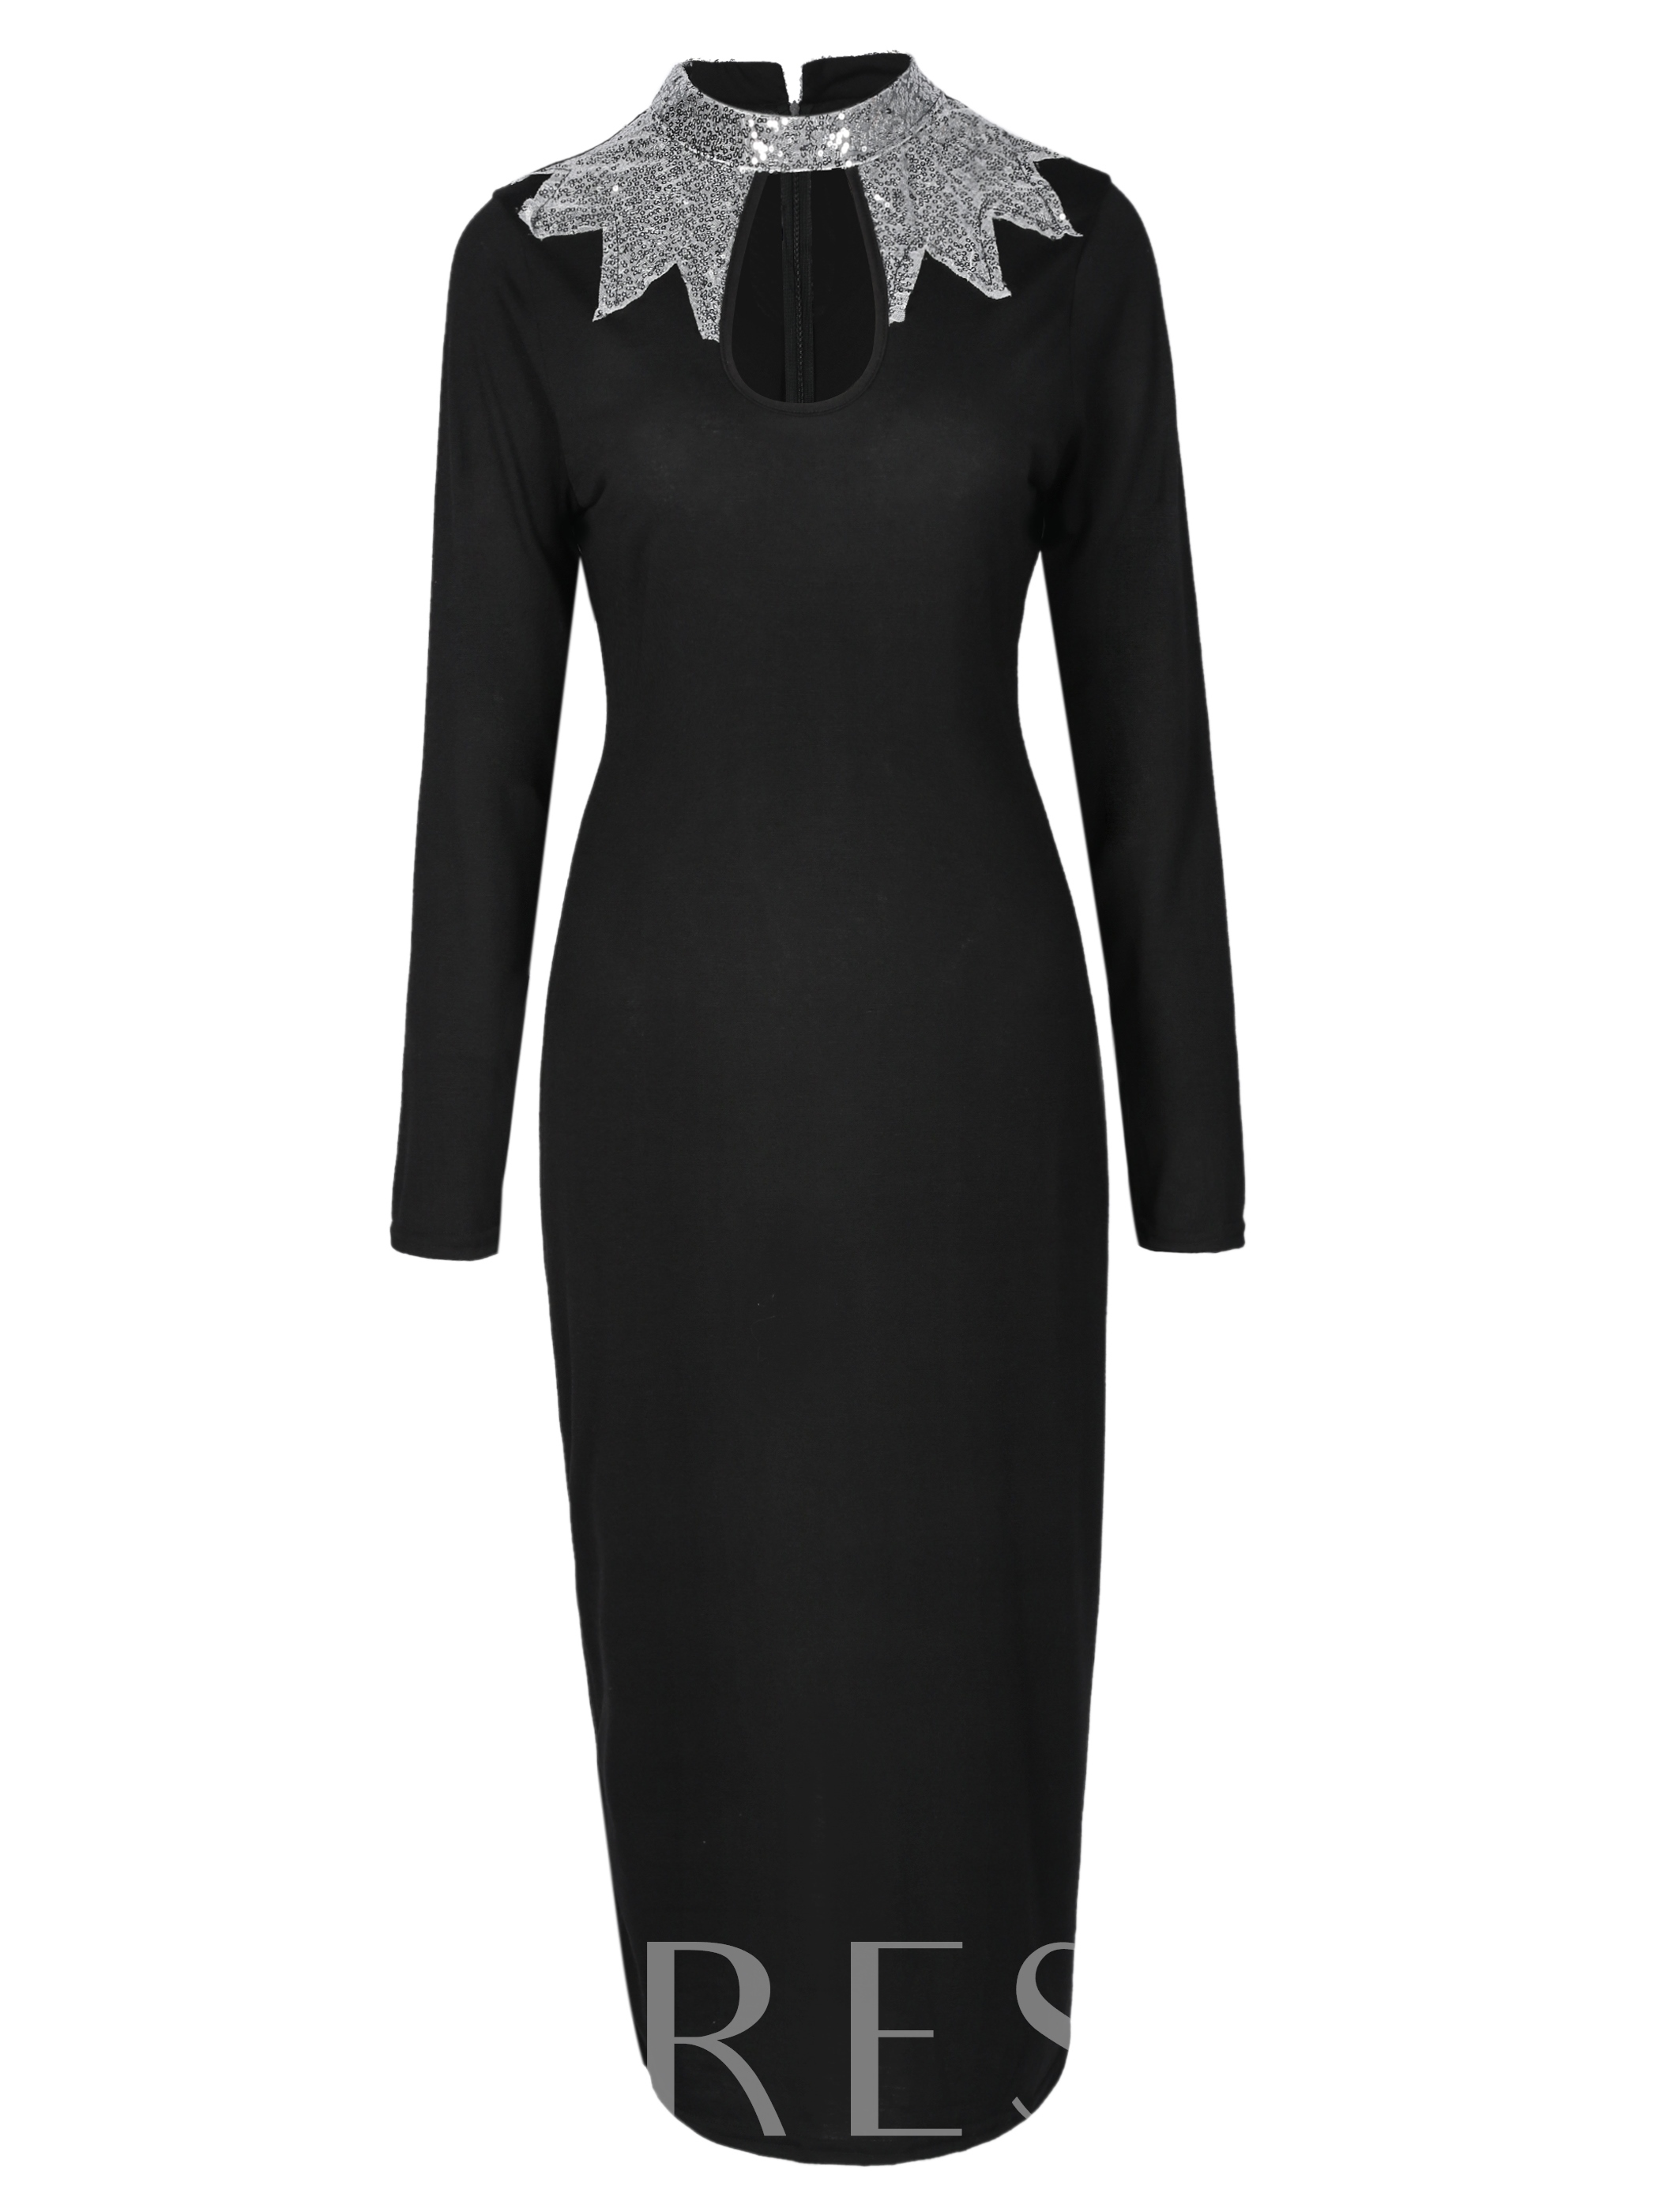 Buy Black Turtle Neck Sequins Women's Bodycon Dress, Spring,Fall,Winter, 13067795 for $19.99 in TBDress store